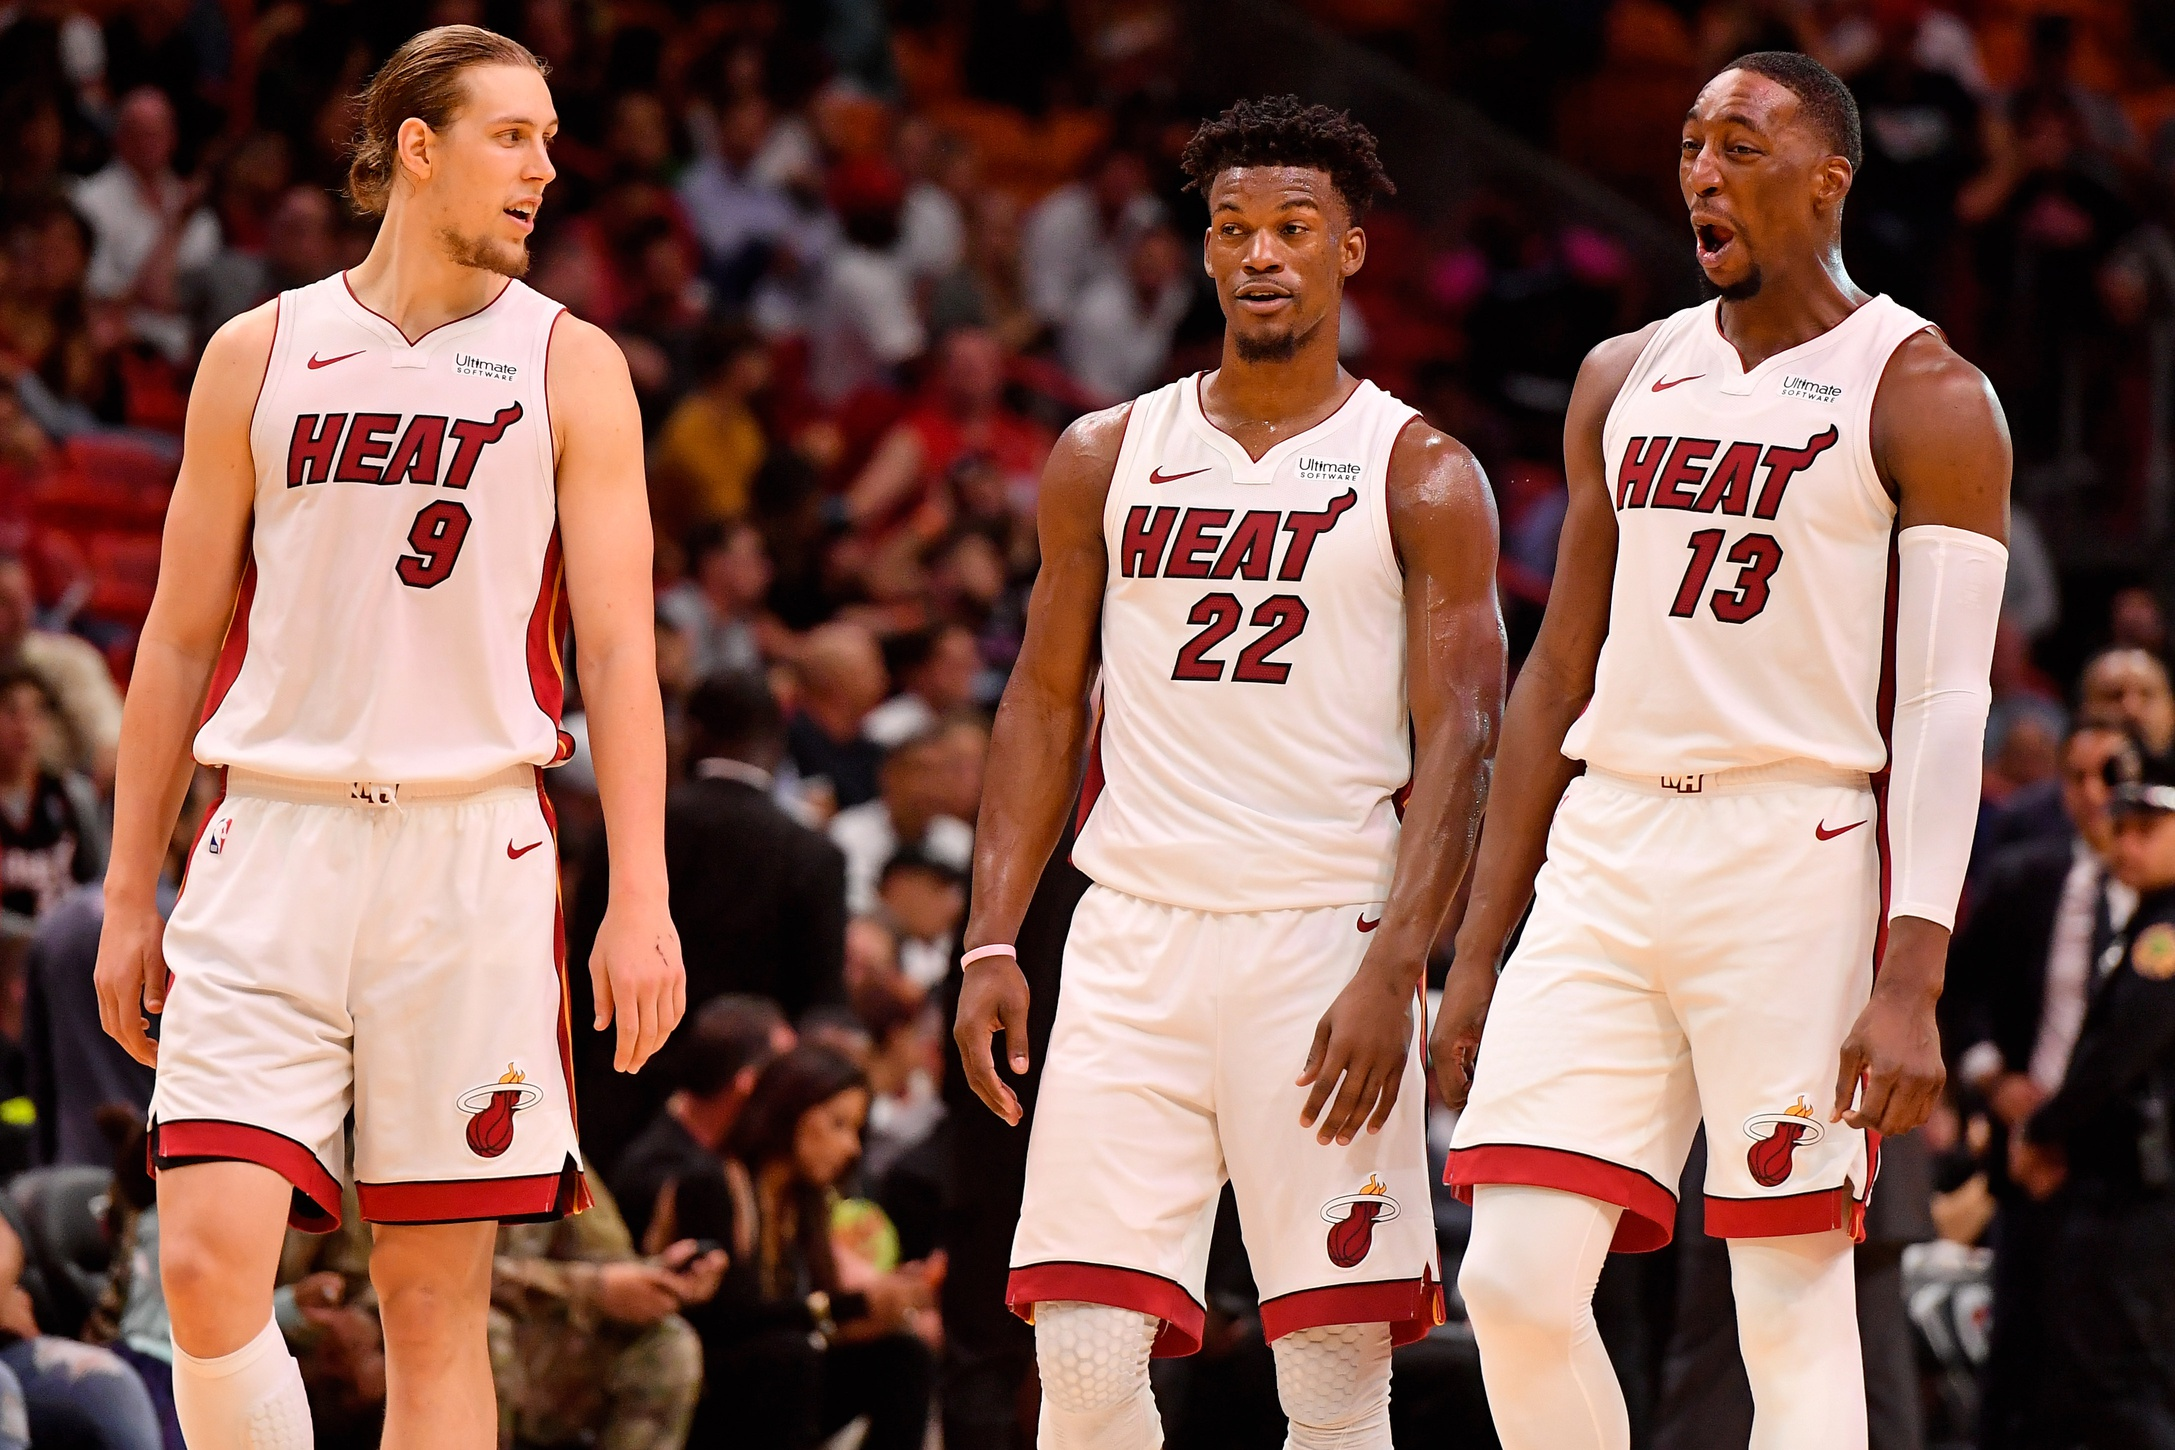 Heat's Jimmy Butler and Bam Adebayo will have to wait a week to learn NBA All-Star fate